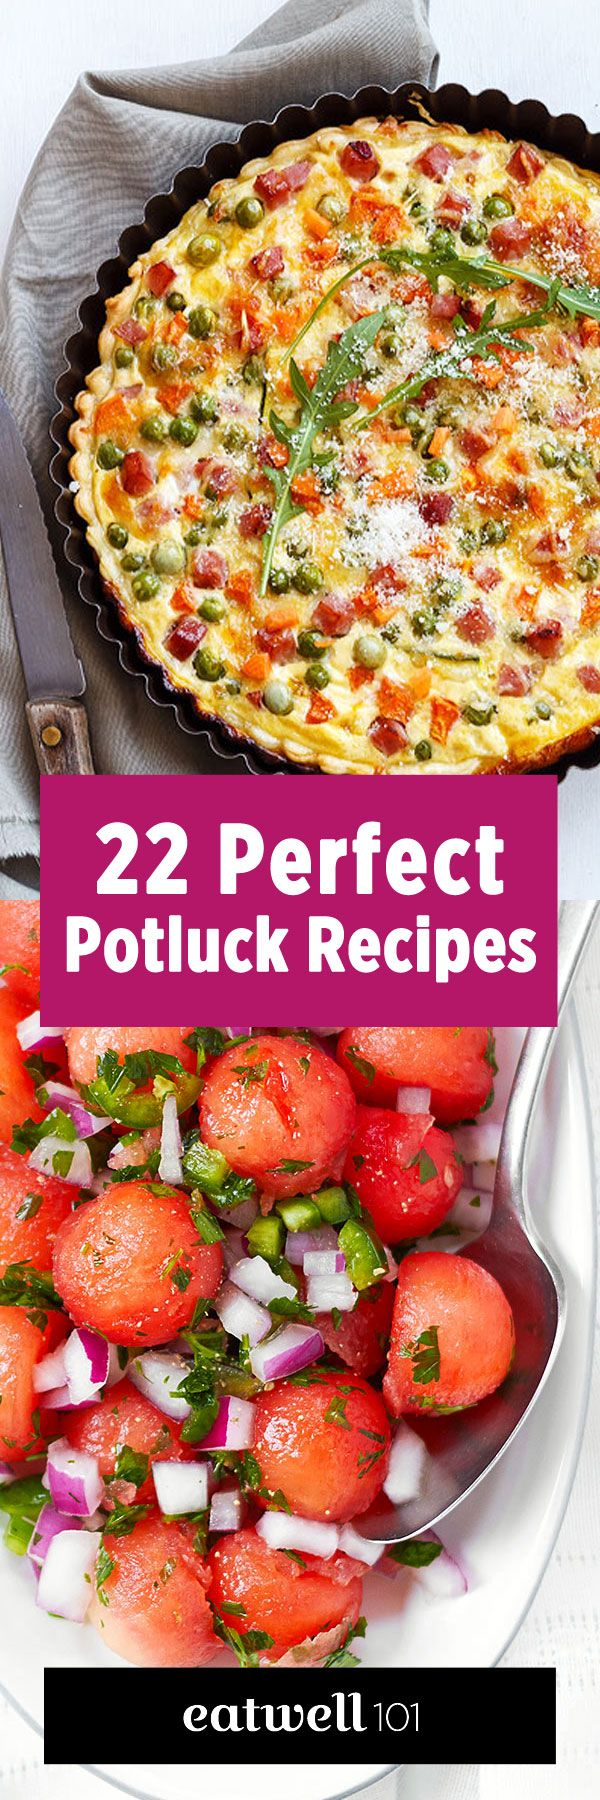 If you are looking for simple, yet tasty dish ideas for your next potluck party, this selection putting an accent on fresh flavors is definitely what you need. Choose from this collection, from sal…